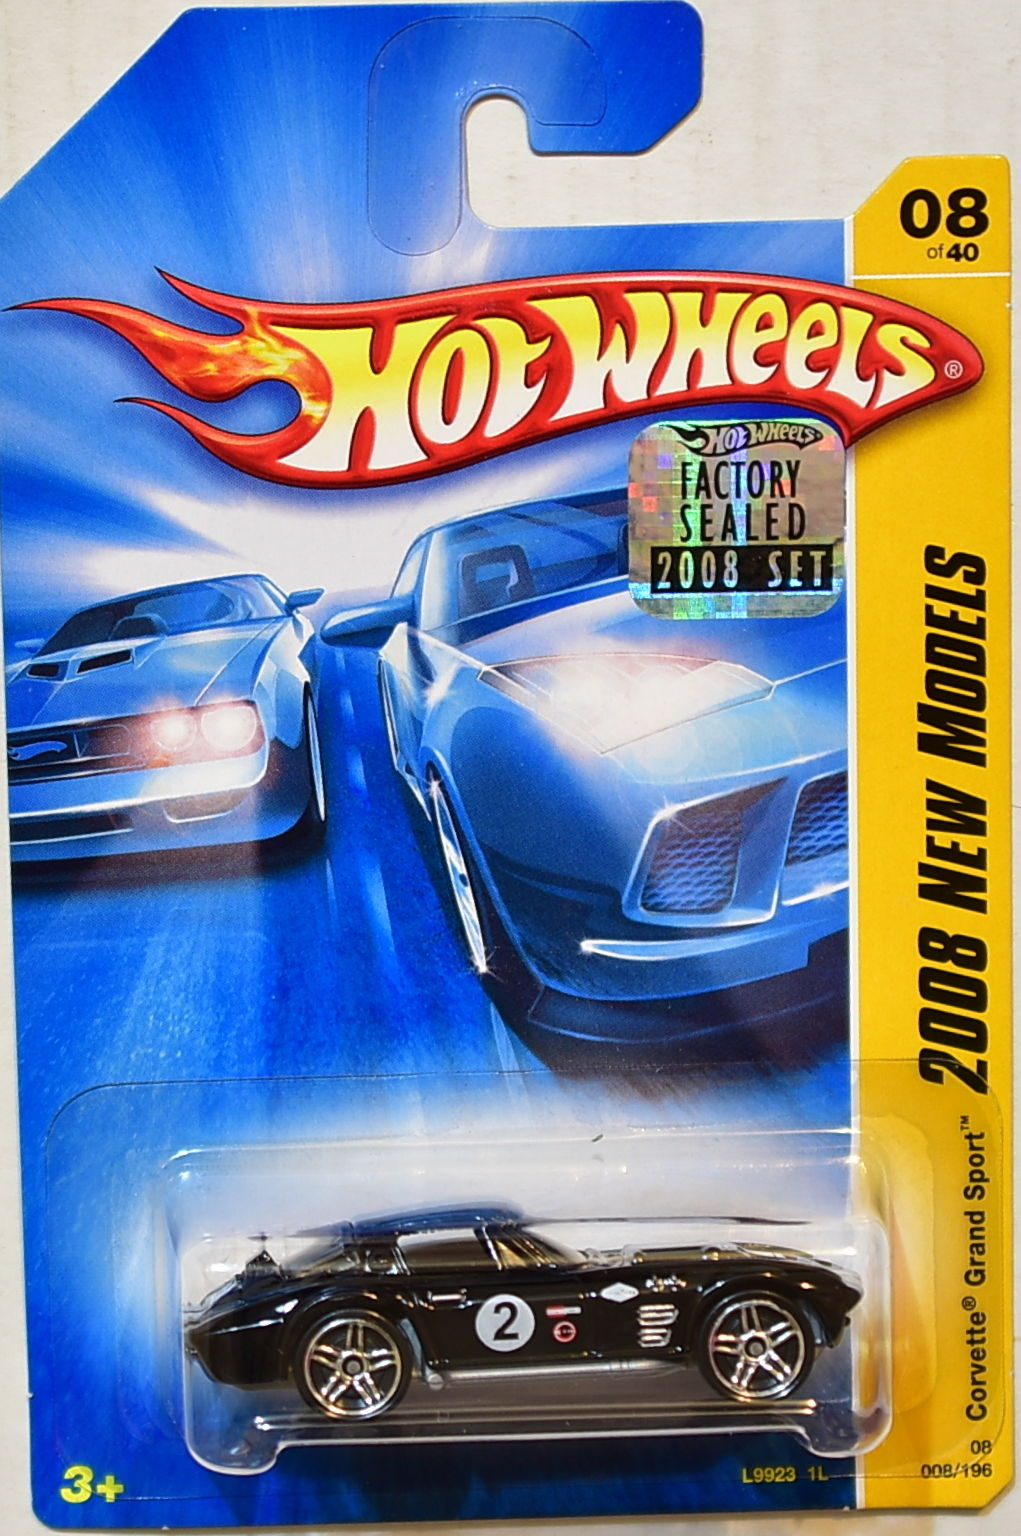 HOT WHEELS 2008 NEW MODELS CORVETTE GRAND SPORT #08/40 BLACK FACTORY SEALED